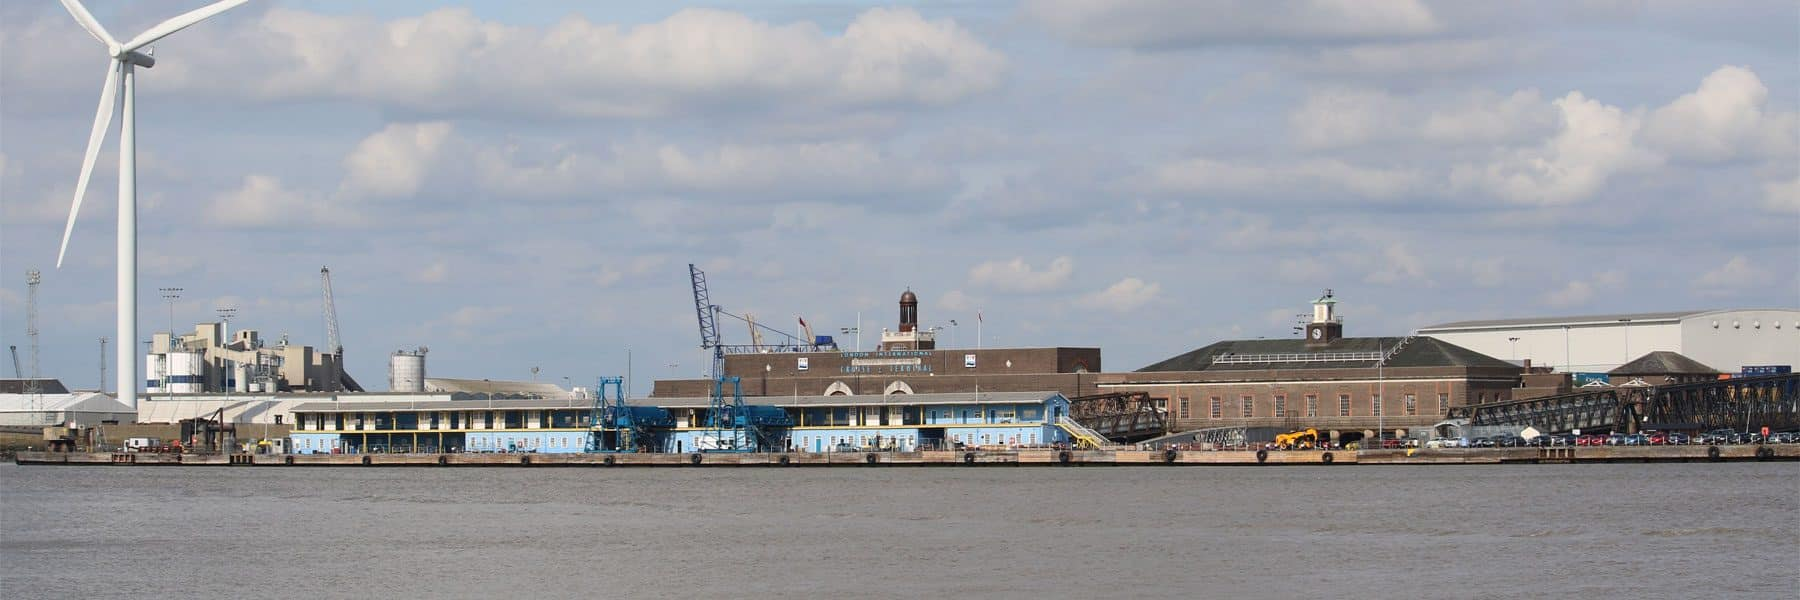 London International Cruise Terminal, Tilbury